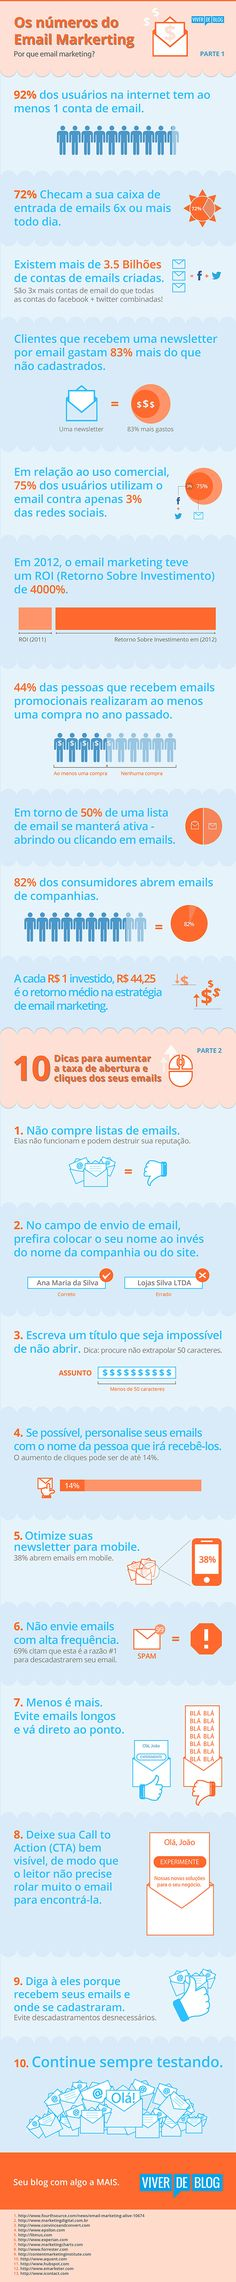 Os números do email marketing e dicas para melhorar sua estratégia! Email marketing numbers and strategy tips! #emailmarketing #email #emailmanager #tips #dicas www.emailmanager.com